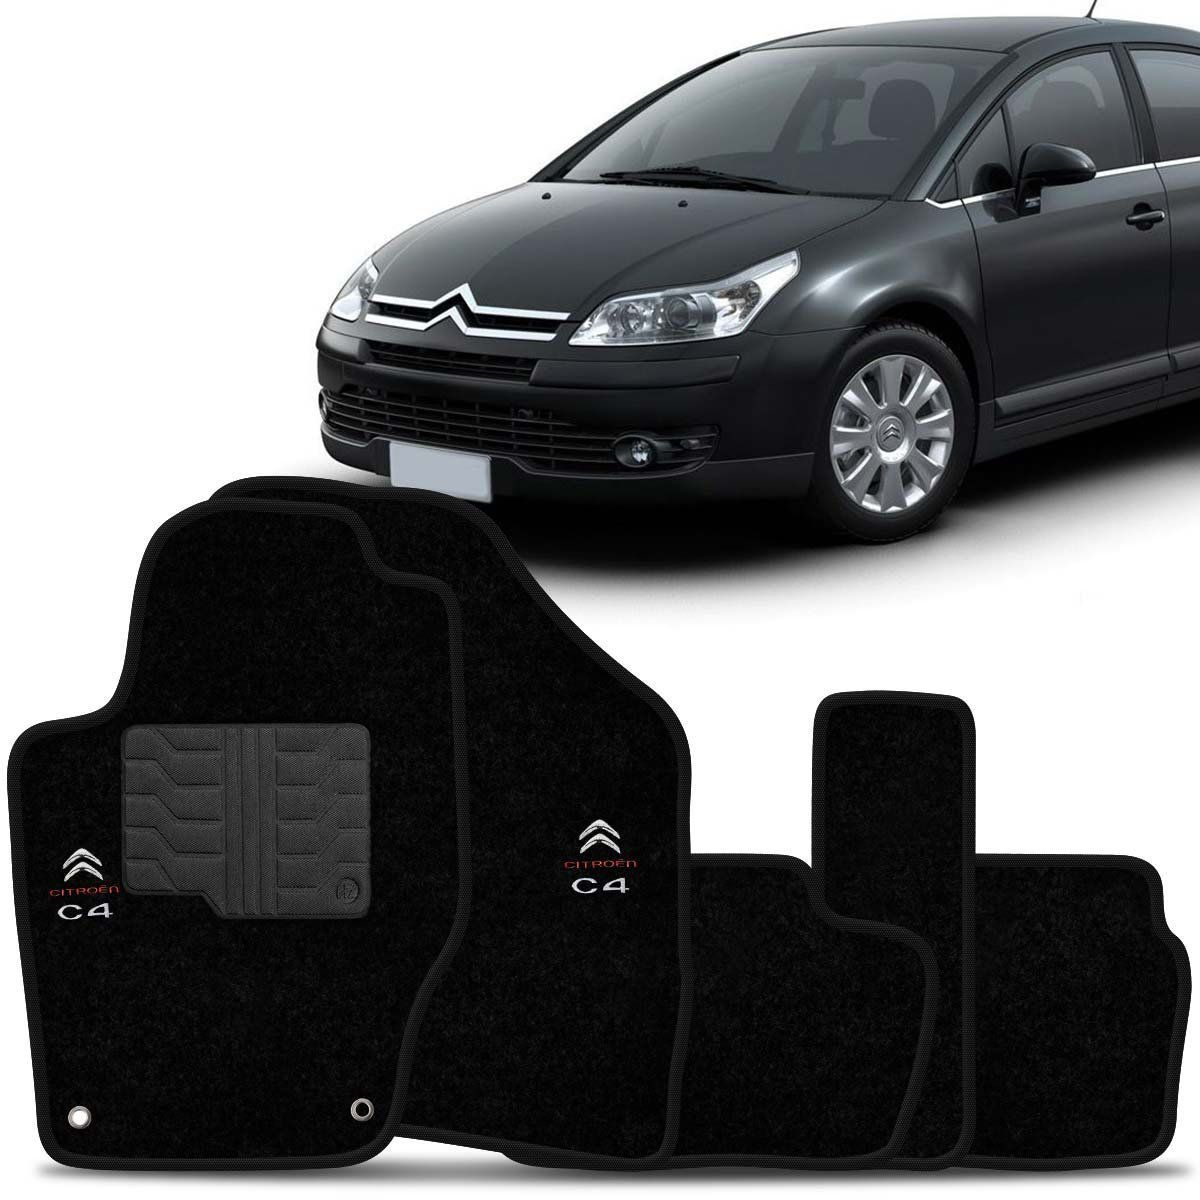 Tapete Carpete Citroën C4 Hatch Pallas 2009 2010 2011 Preto